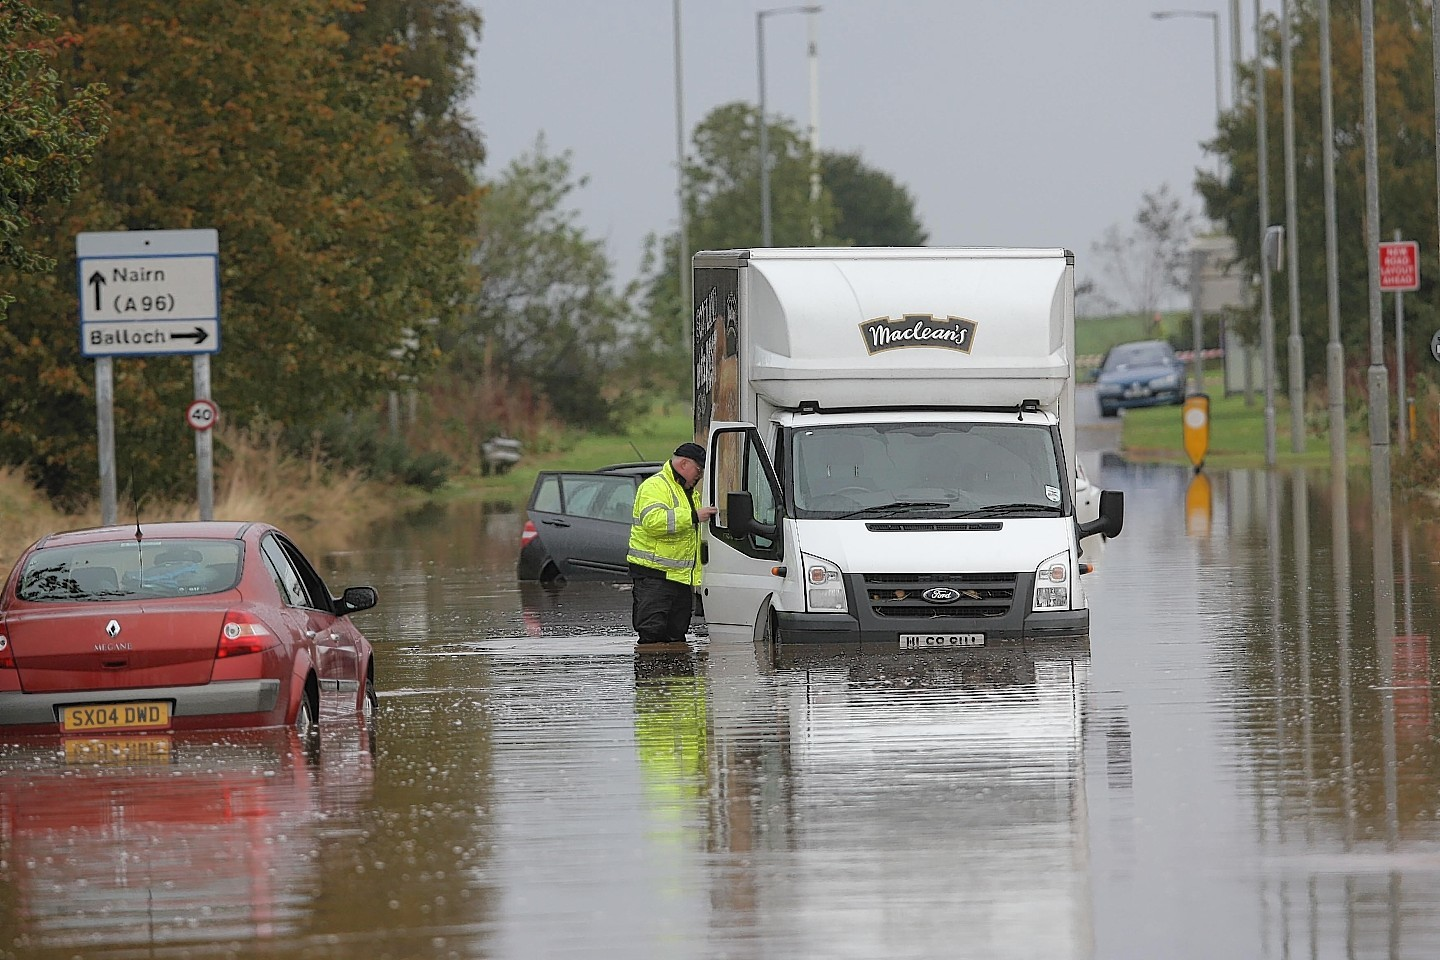 Flooding on Barn Church Road in Inverness